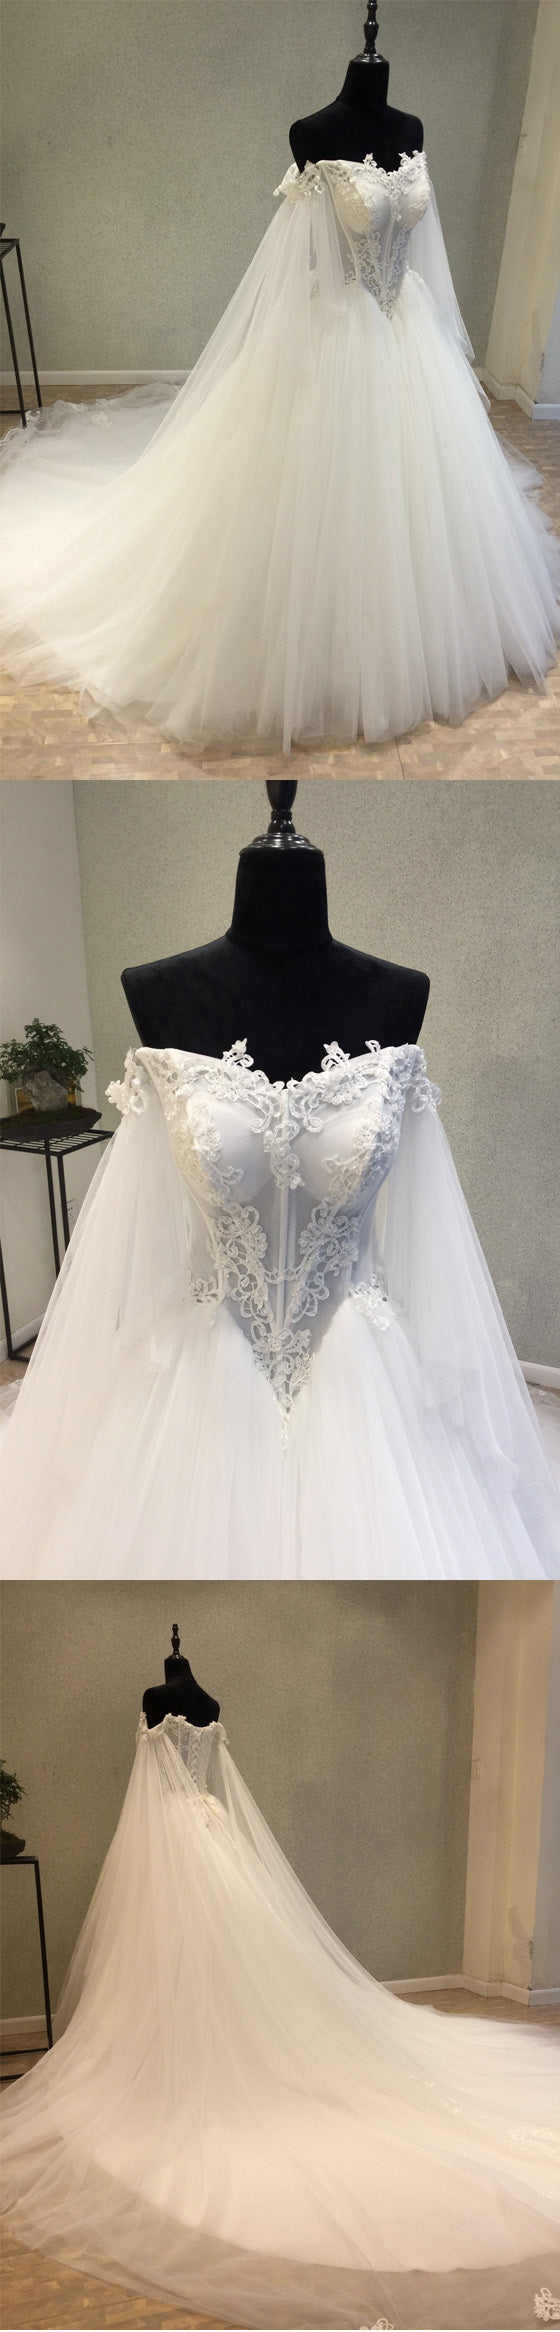 Affordable Off the Shoulder Charming Long Wedding Dresses, WG1236